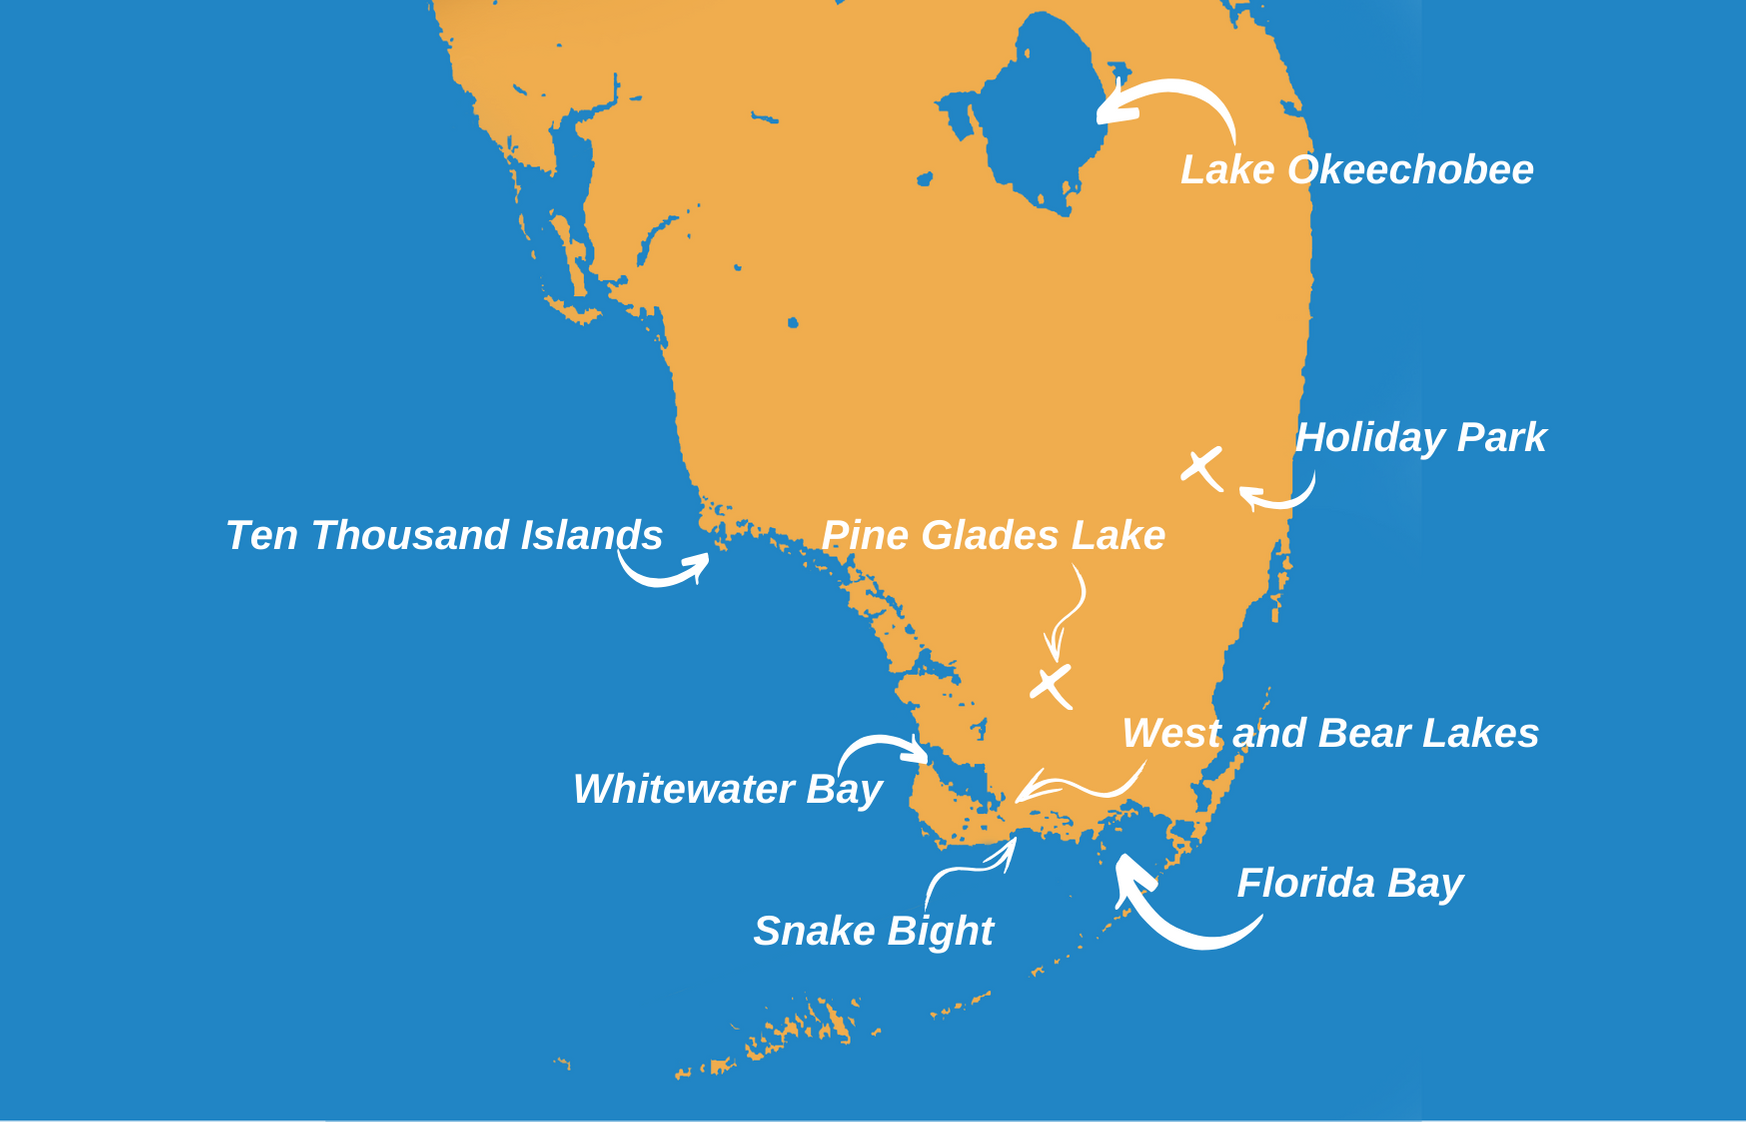 A map infographic showing the top fishing spots in the Everglades, Florida – Ten Thousand Islands, Florida Bay, Snake Bight, Bear and West Lakes, Whitewater Bay, Holiday Park, Lake Okeechobee, and Pine Glades Lake